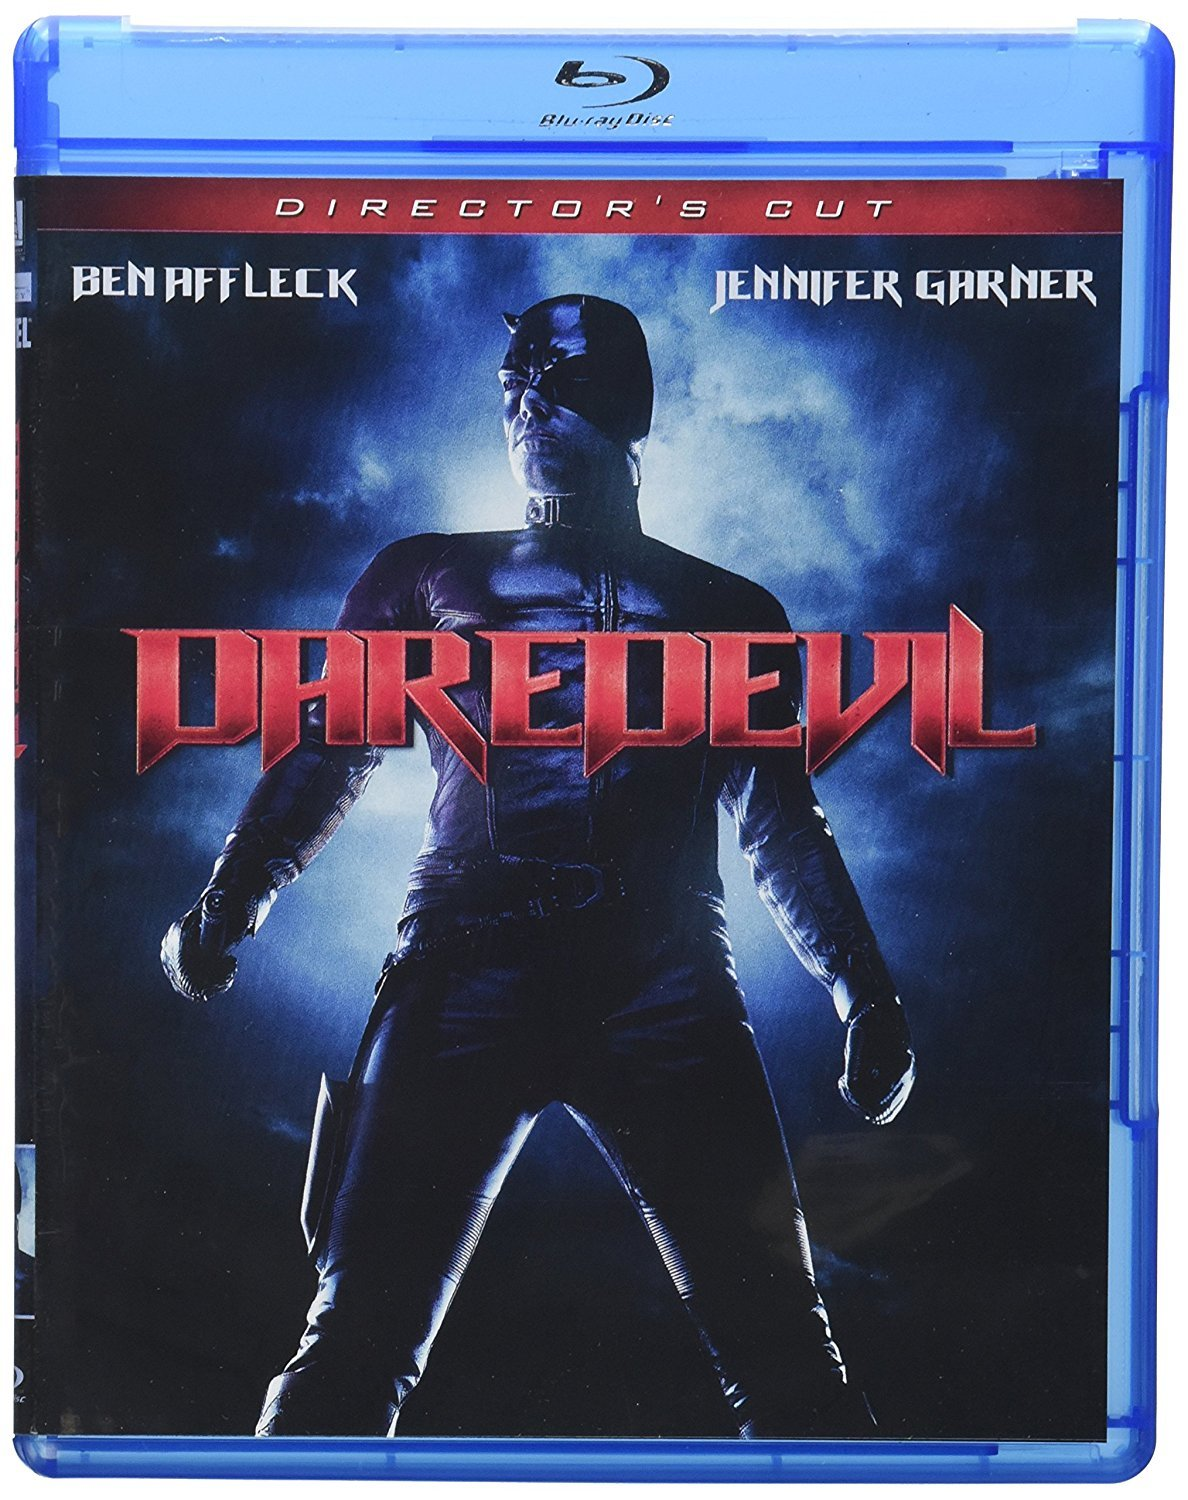 Daredevil Director's Cut (Blu-ray) New